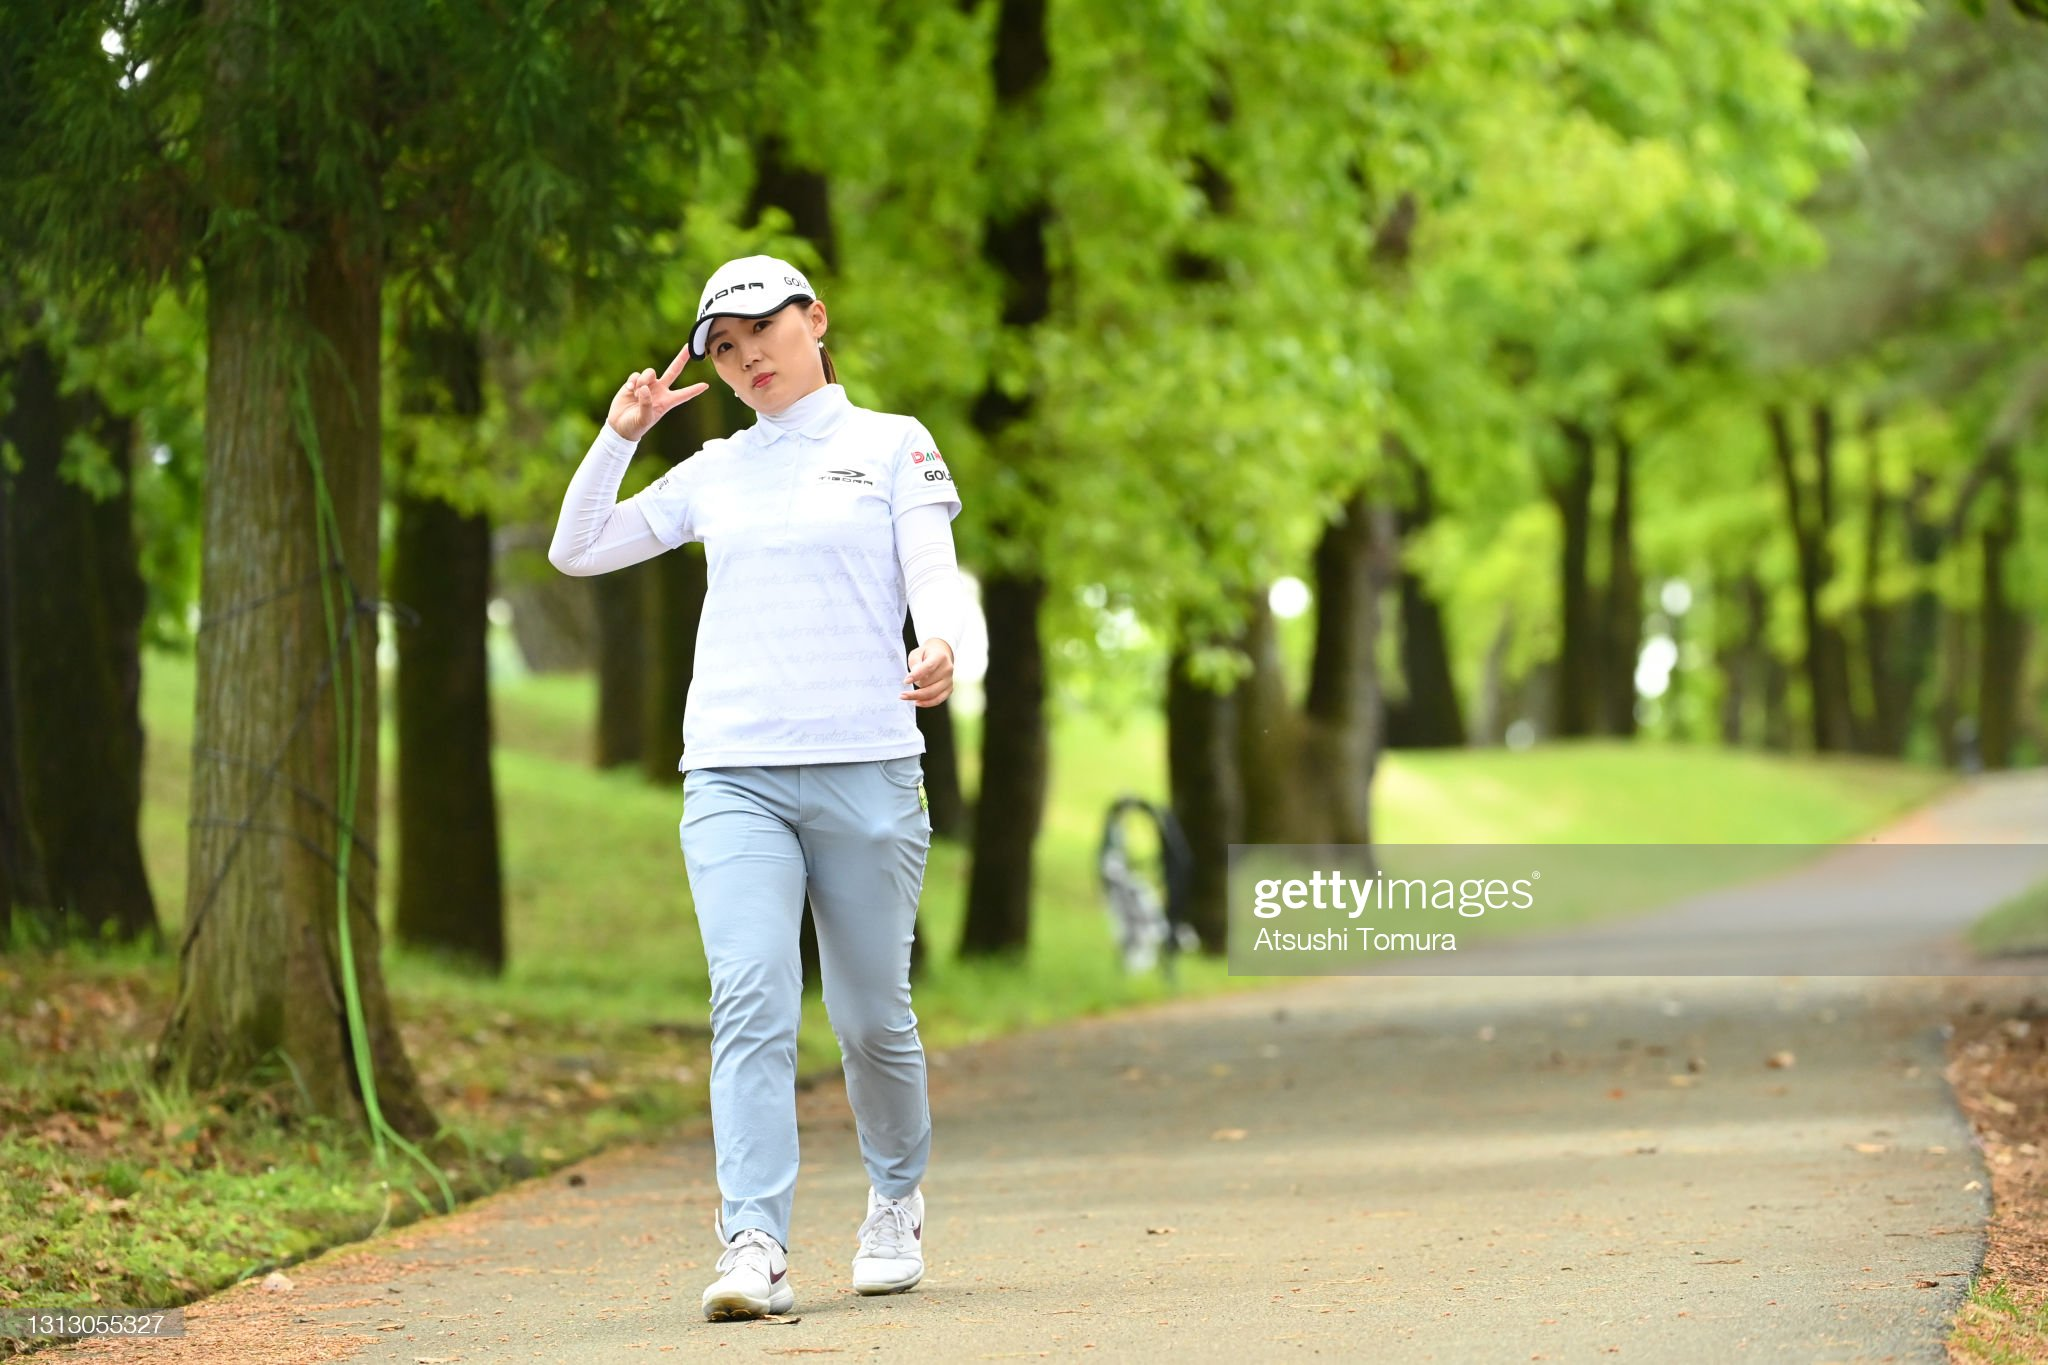 https://media.gettyimages.com/photos/nari-lee-of-south-korea-poses-on-her-way-to-the-17th-tee-during-the-picture-id1313055327?s=2048x2048